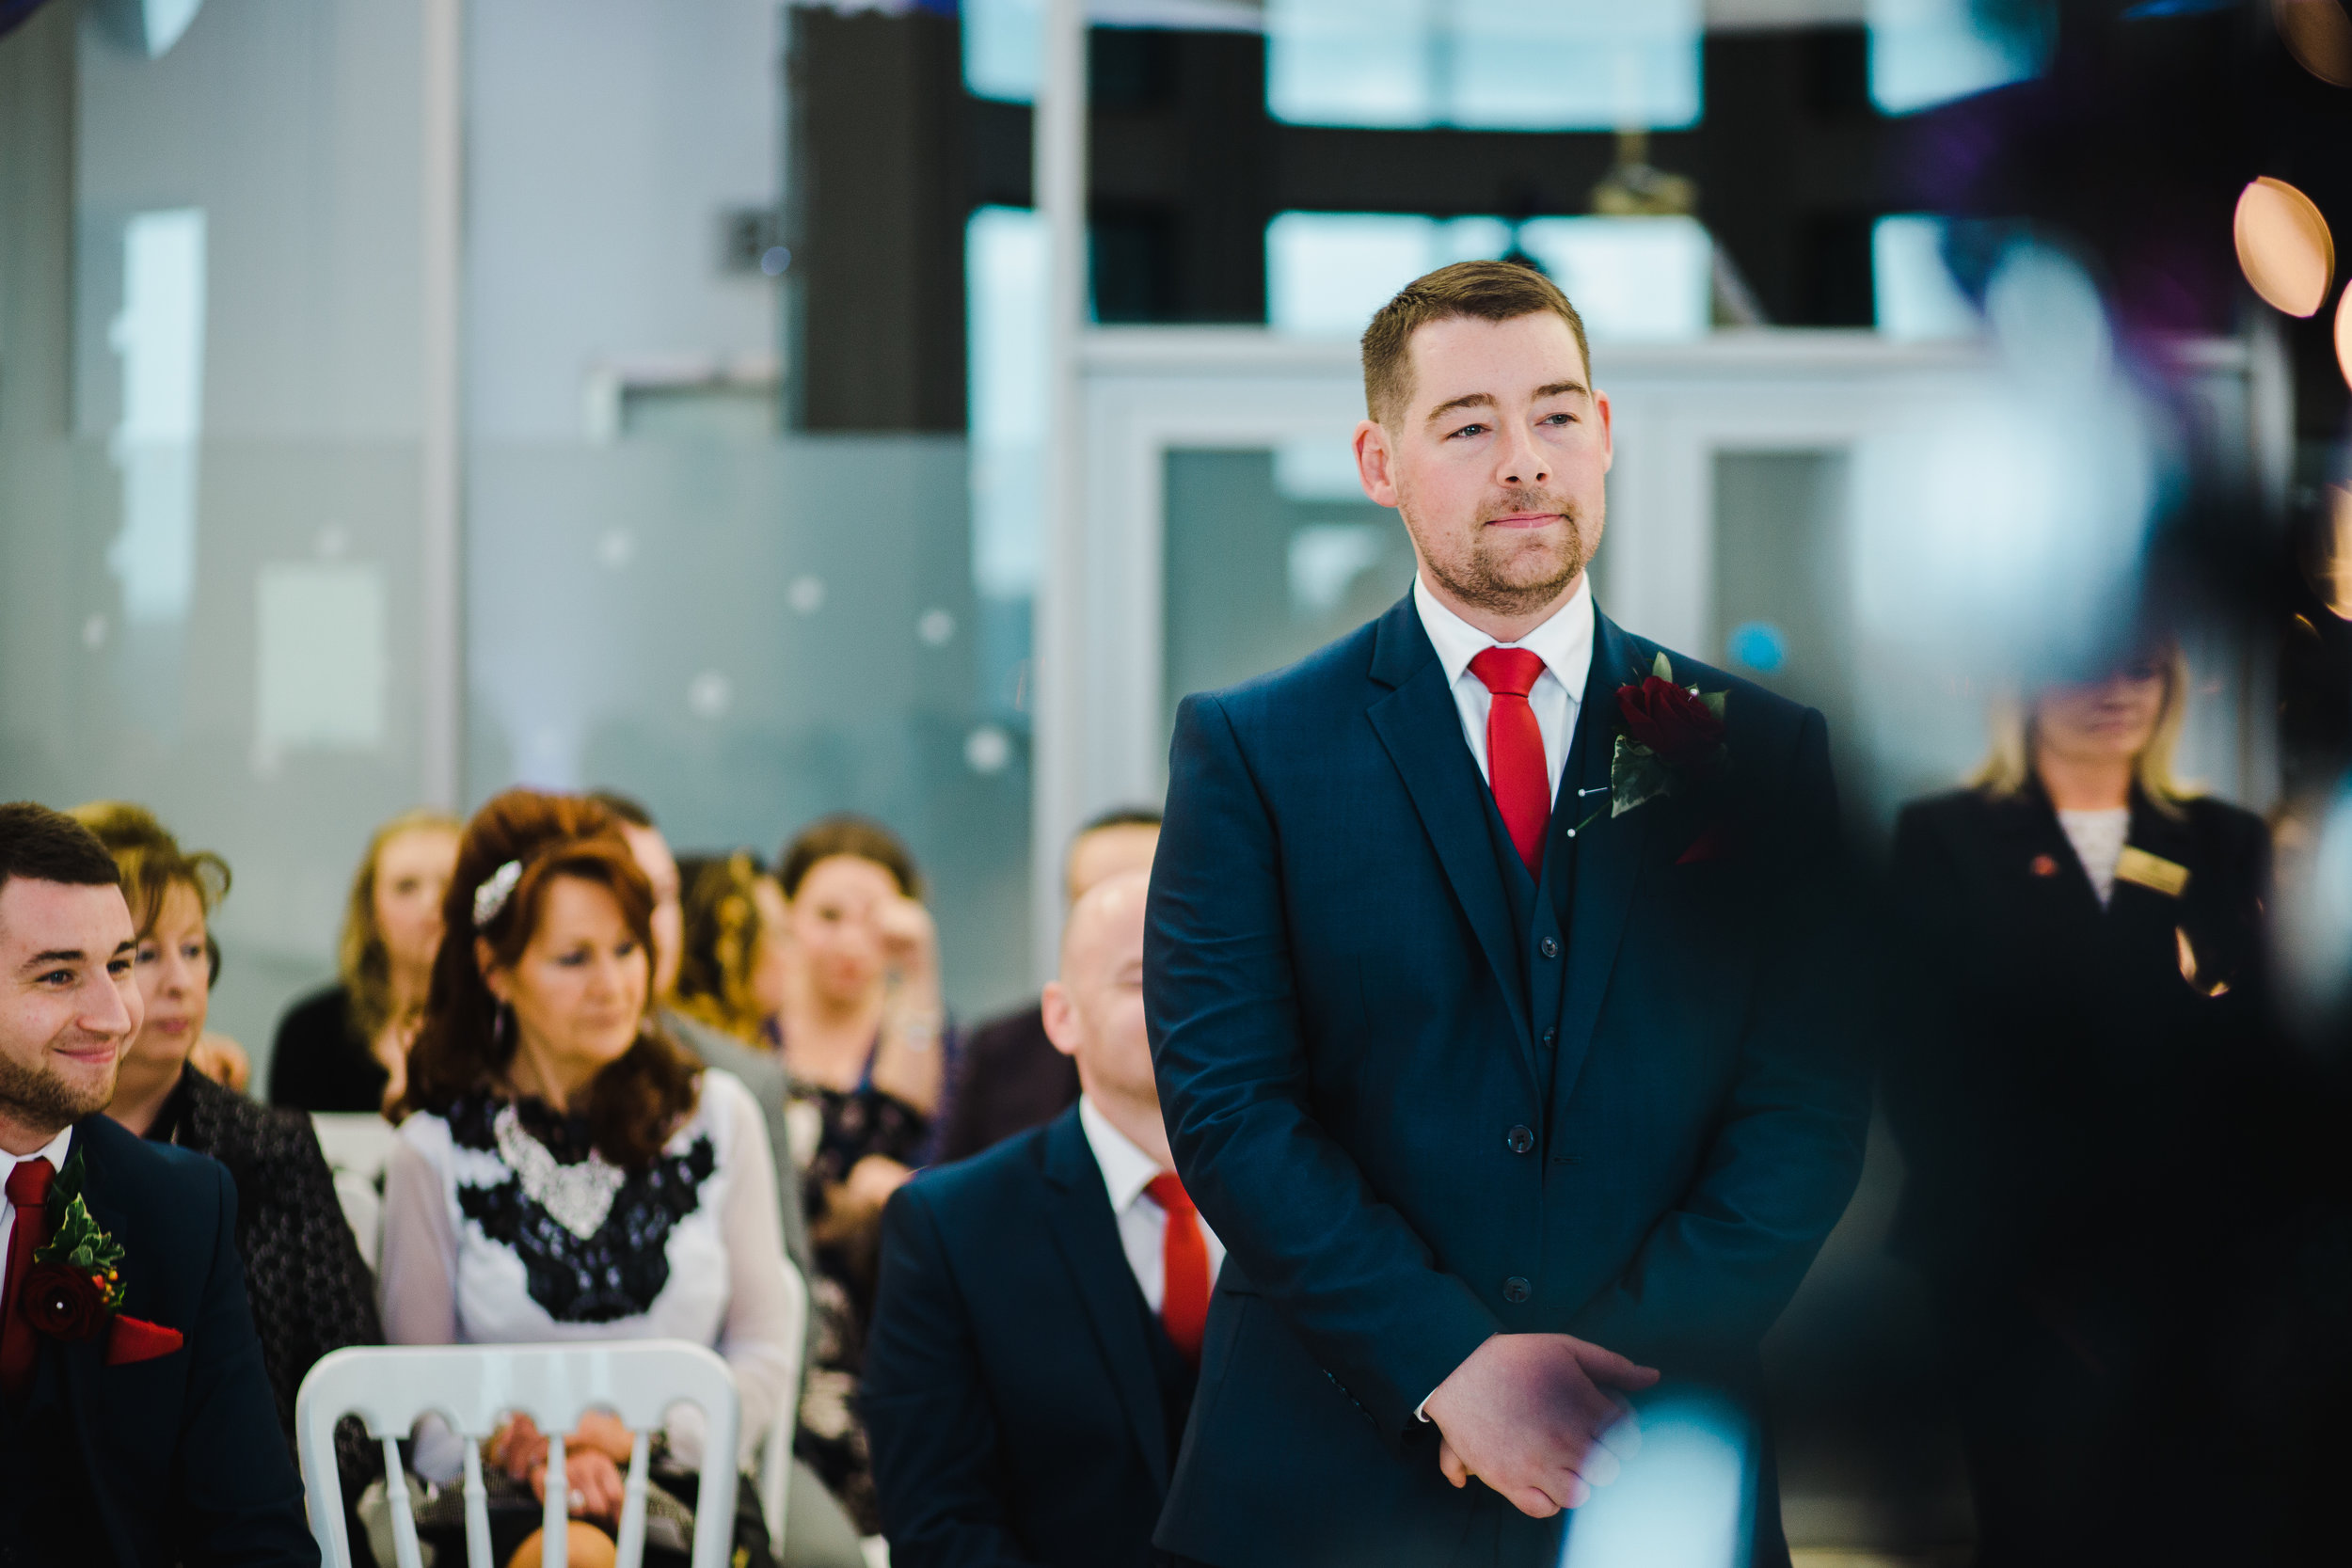 Liverpool wedding photographer - a nervous groom